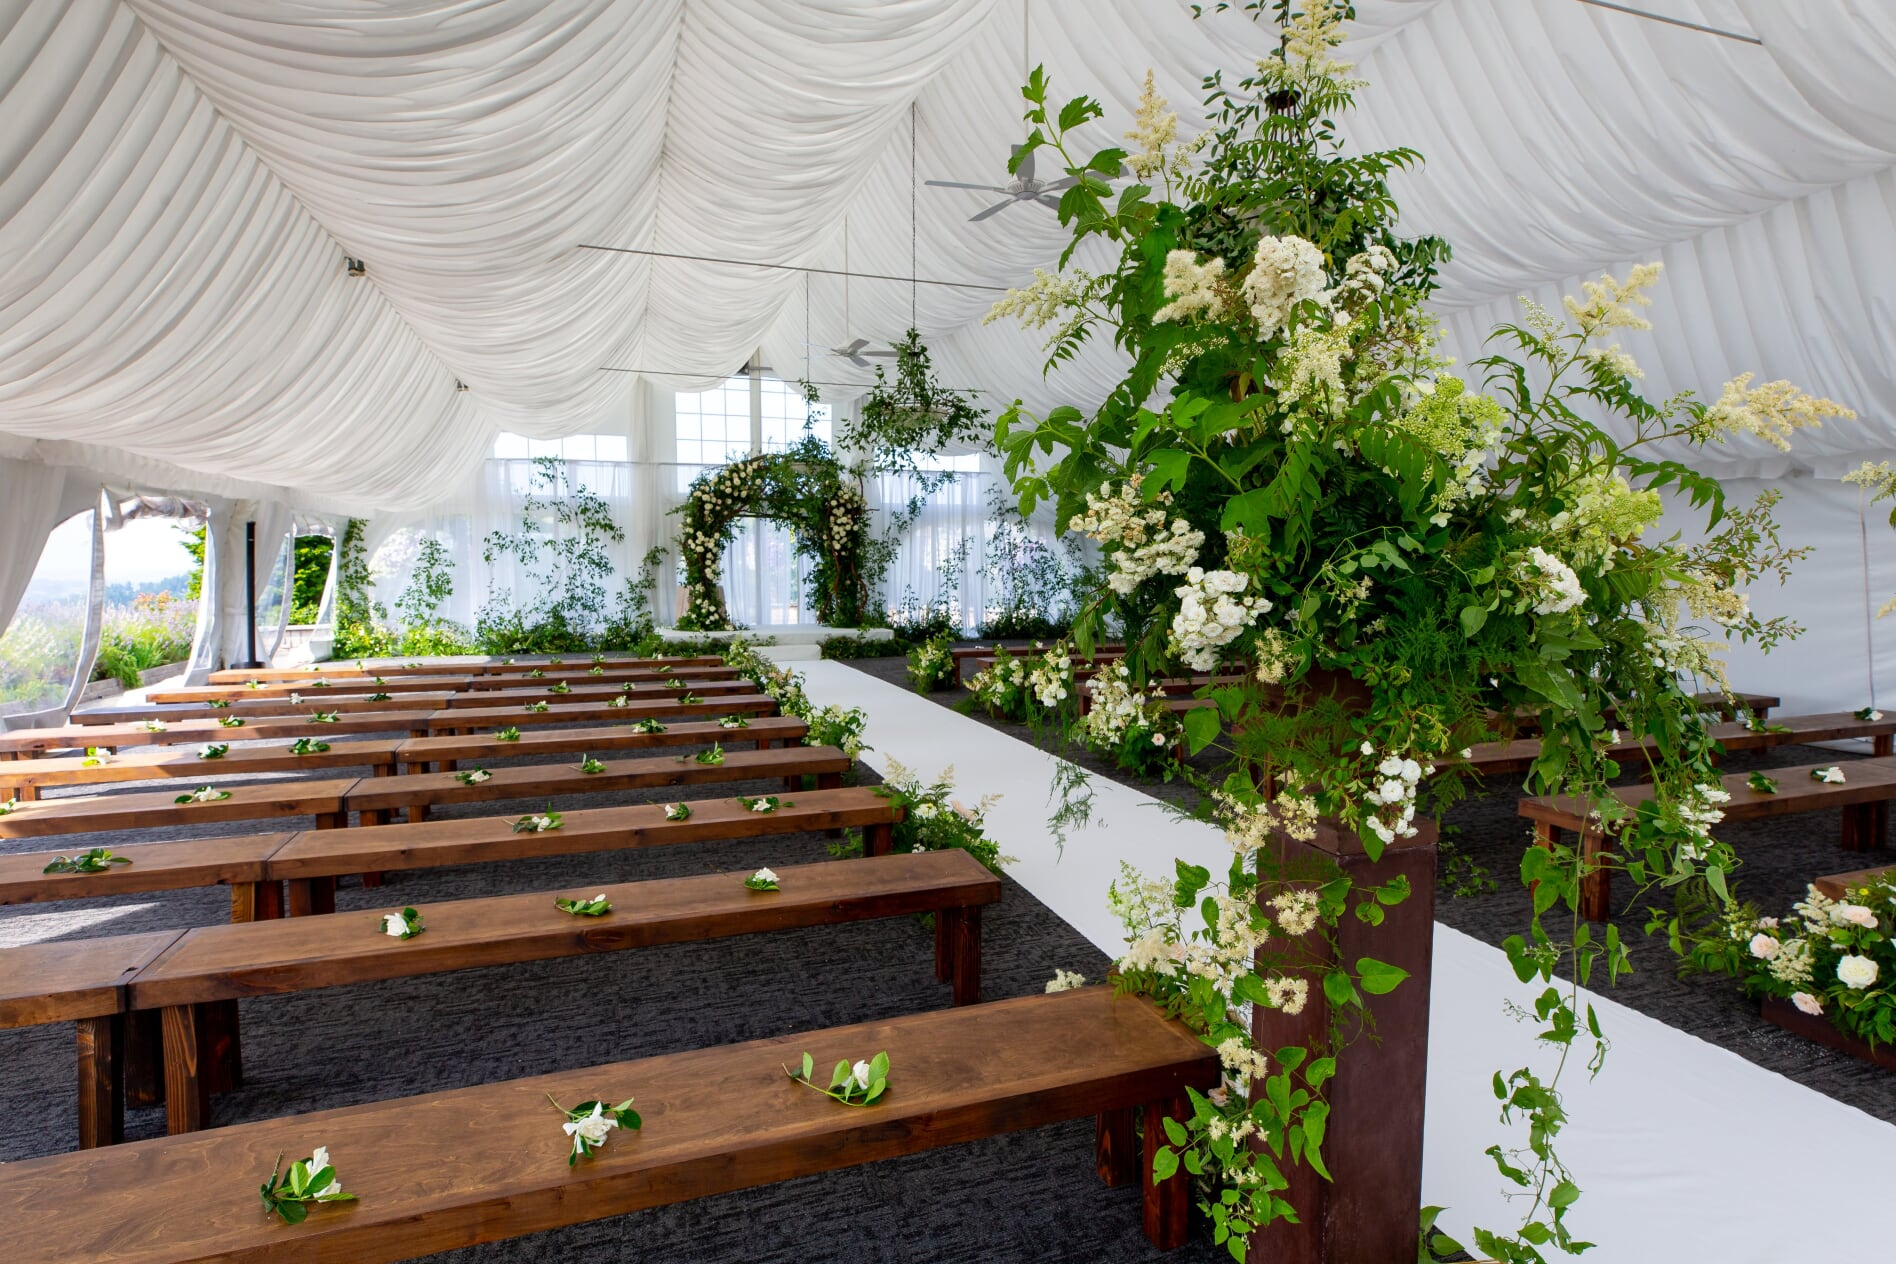 wooden benches for the ceremony in white tent with large floral urn and ceremony arch